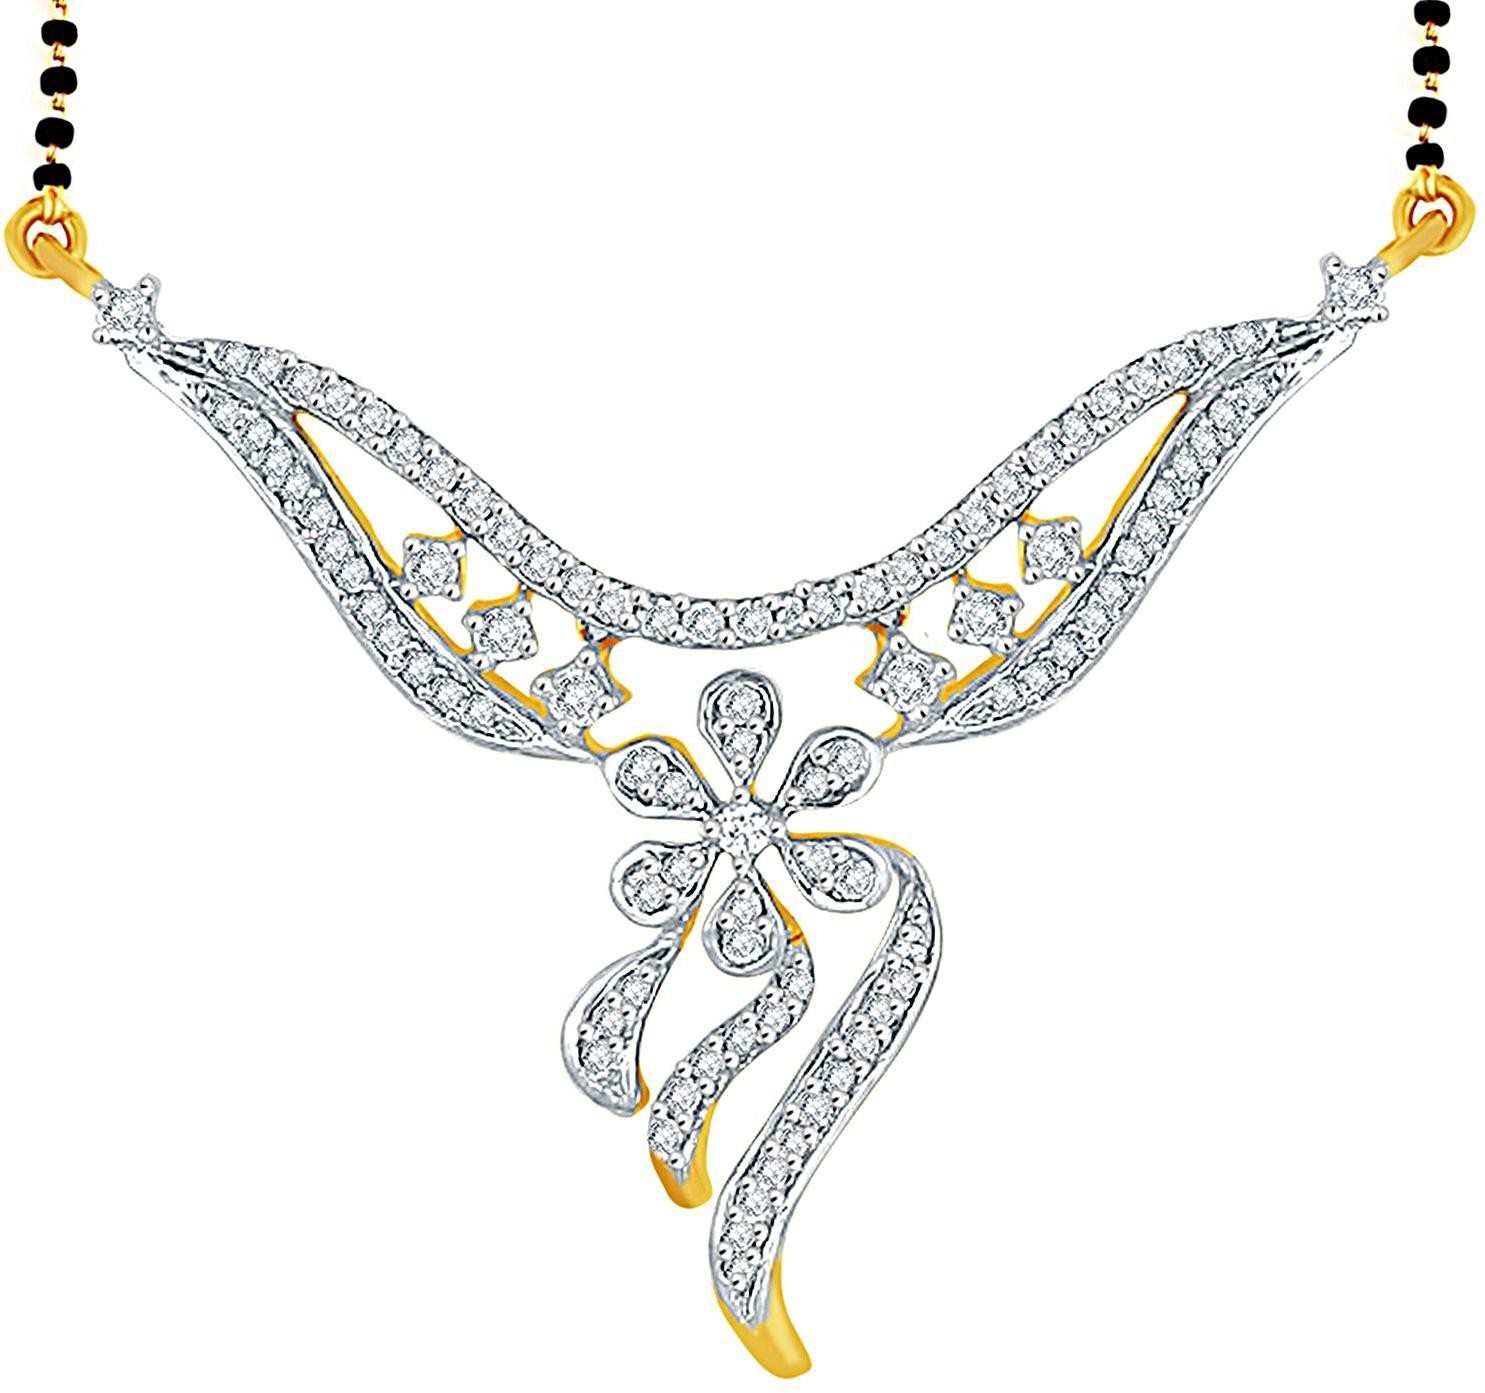 Deals - Delhi - Mangalsutras <br> Gold & Diamond Jewellery<br> Category - jewellery<br> Business - Flipkart.com